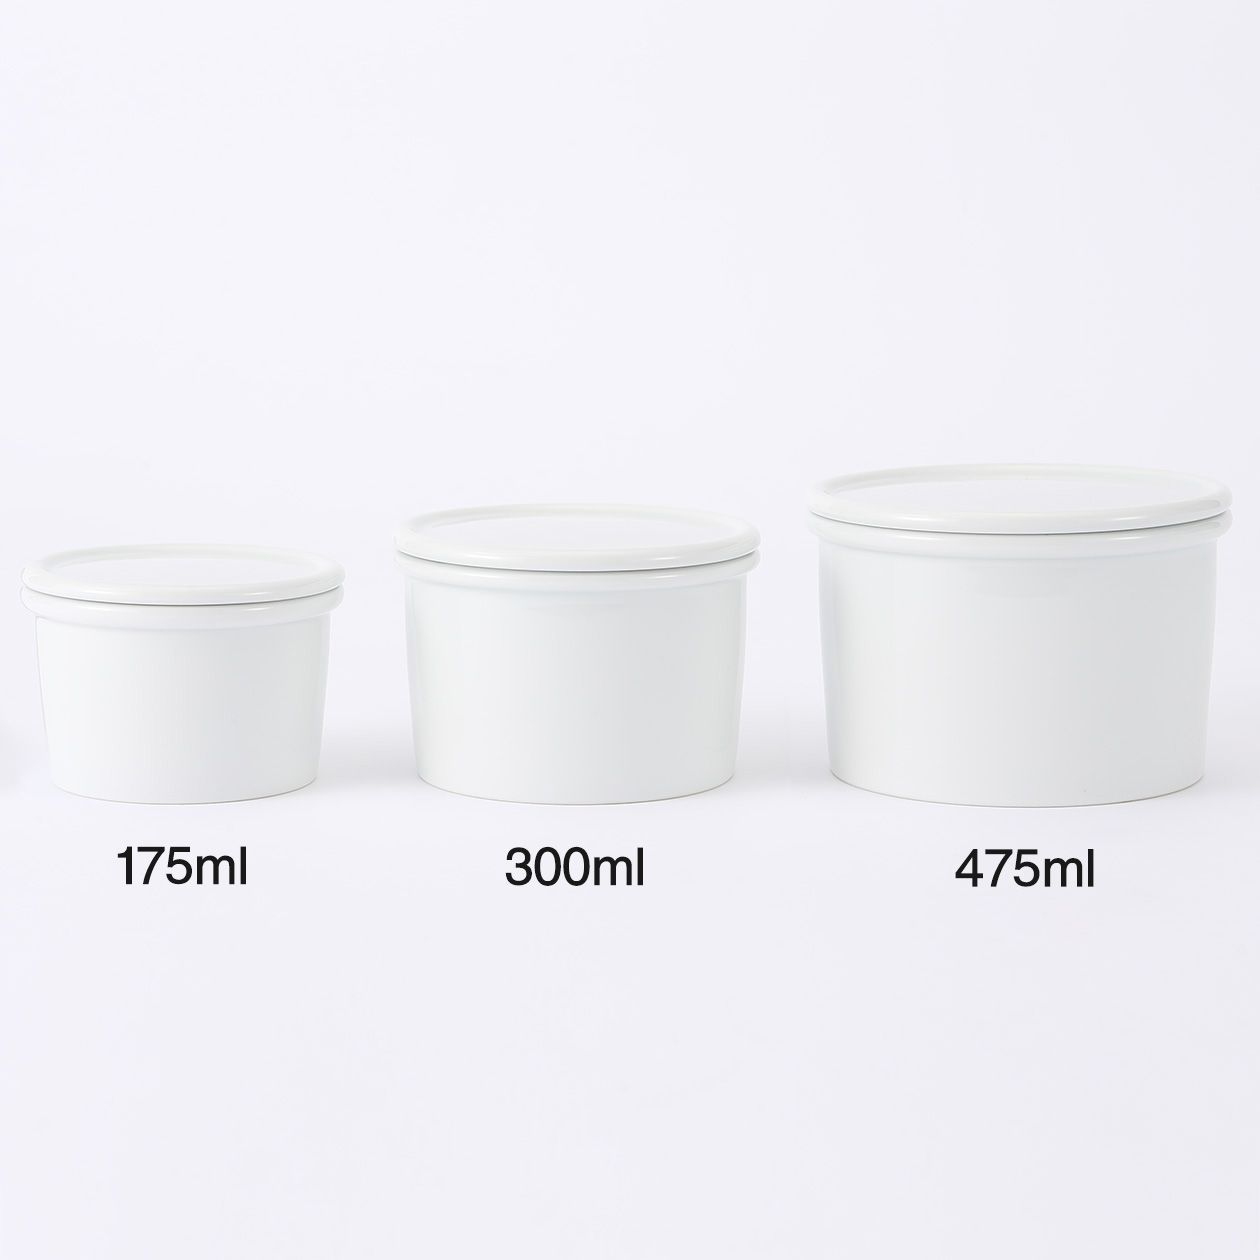 A Convenience Storage Container Made From White Porcelain Can Be Used As Dishware To Serve Food Or Small Sto White Porcelain Small Storage Containers Dishware